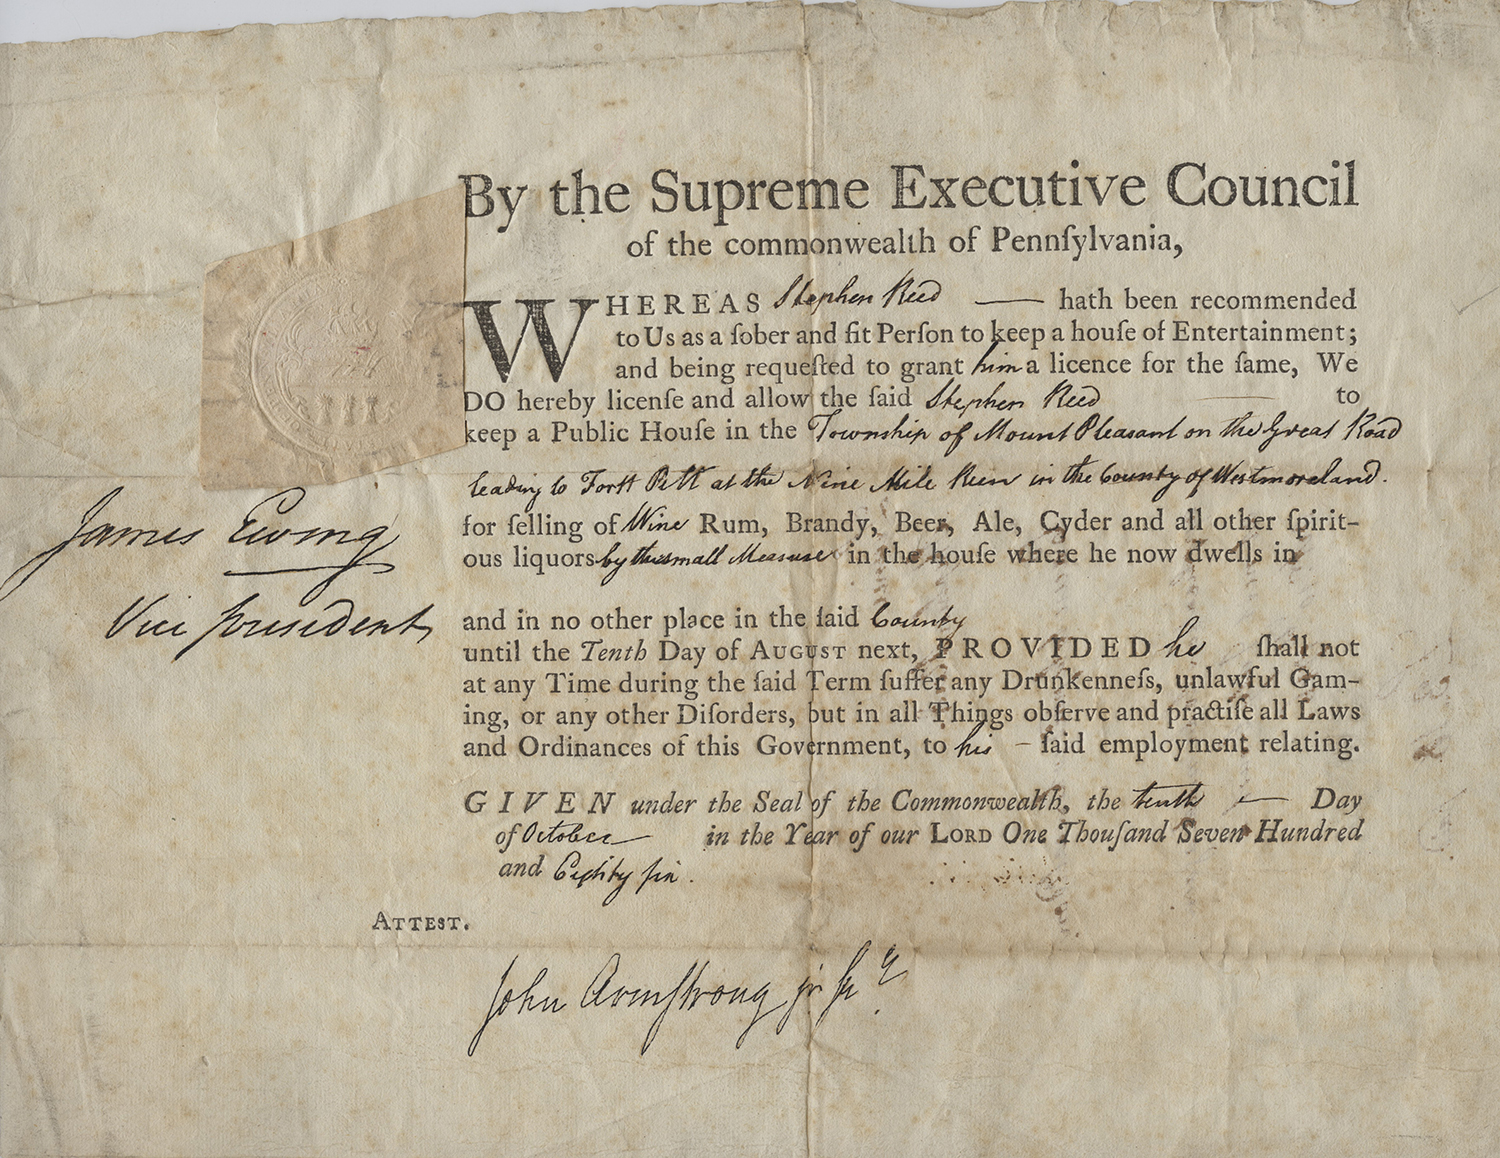 License allowing Stephen Reed to operate a public house and sell liquor, 1786. MFF 2741, Detre Library & Archives, Heinz History Center.